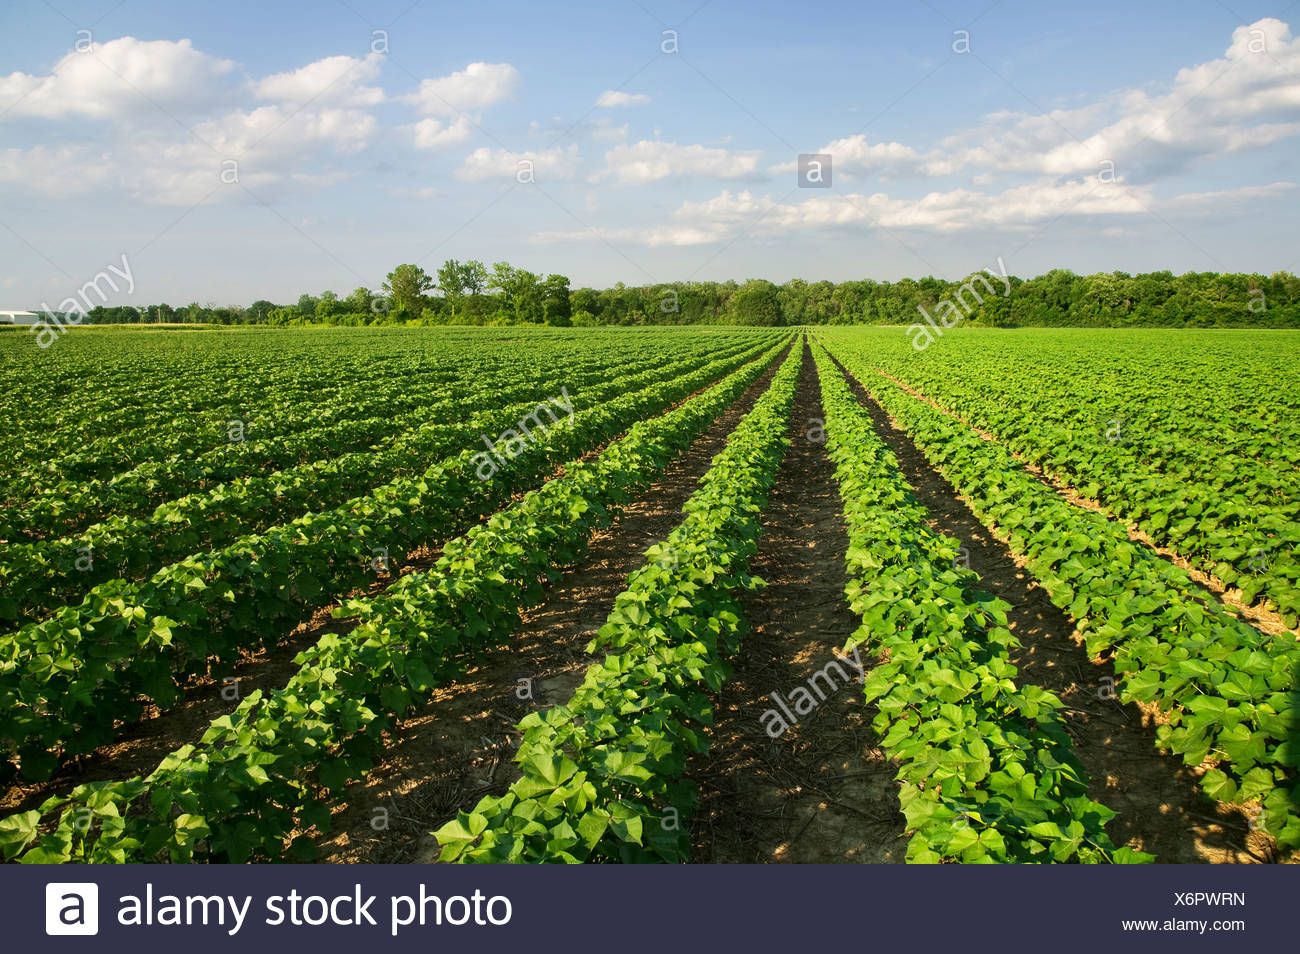 Agriculture - Field of healthy mid growth no-till cotton at the squaring stage in early morning light / Western Tennessee, USA. - Stock Image